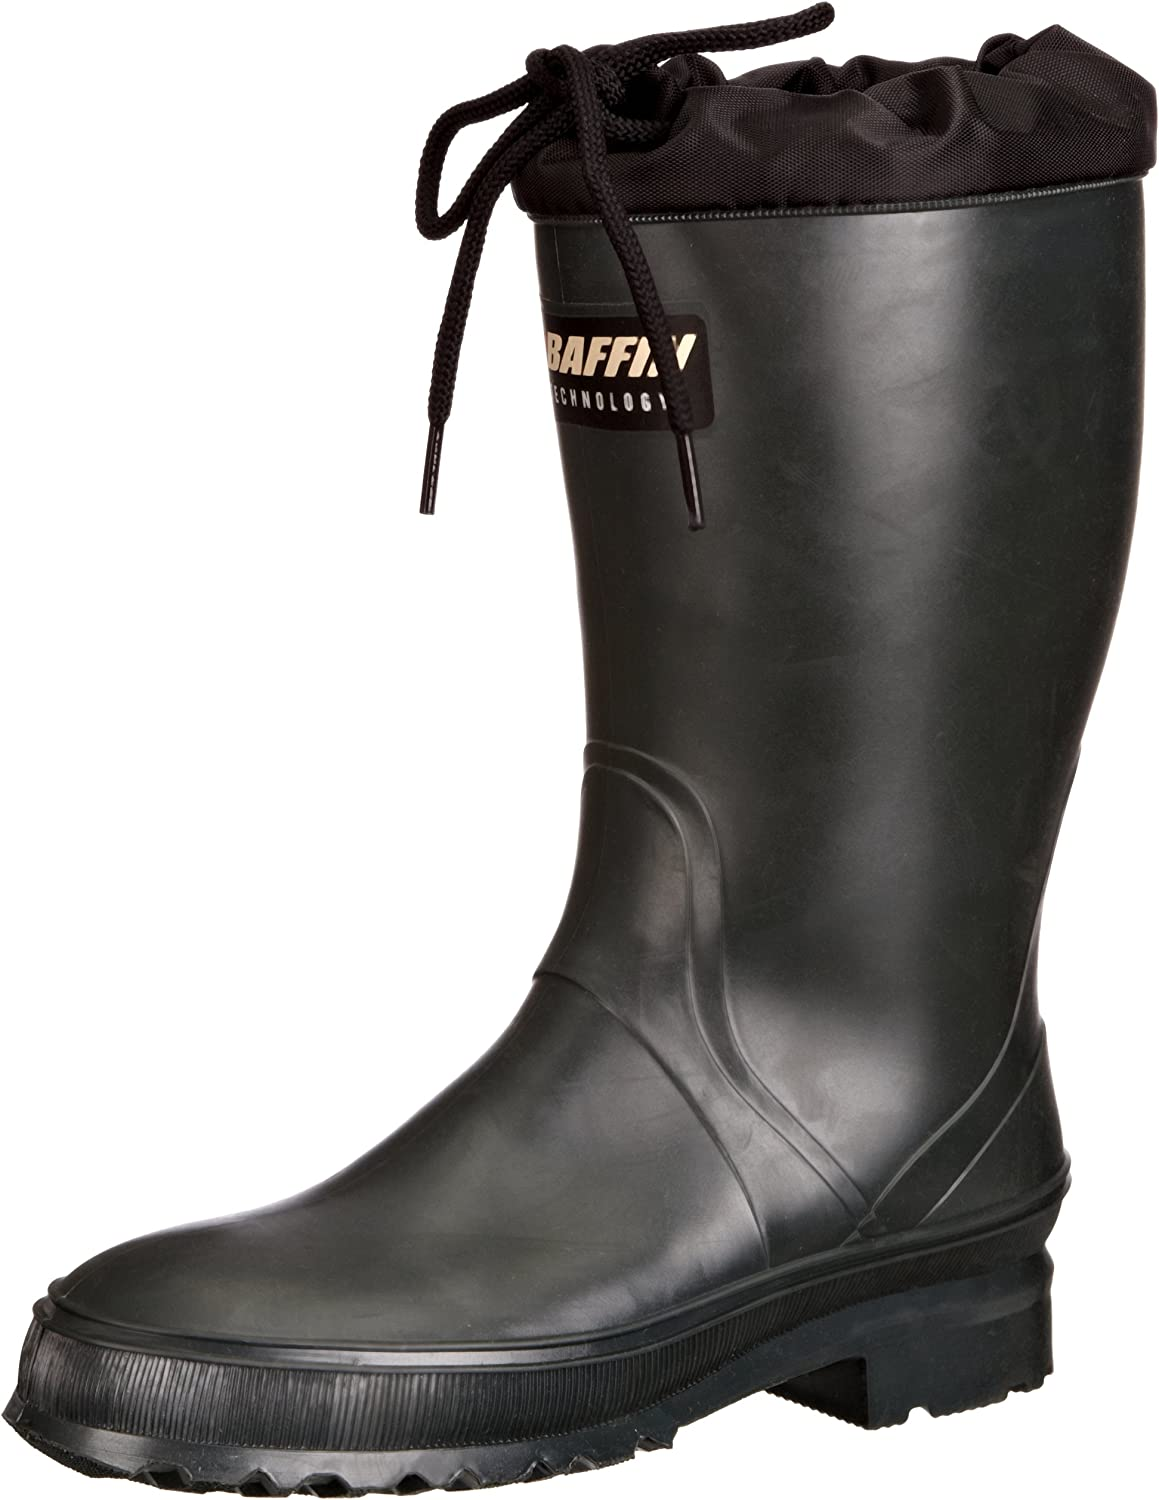 Baffin Women's Storm Canadian Made Industrial Rubber Boot